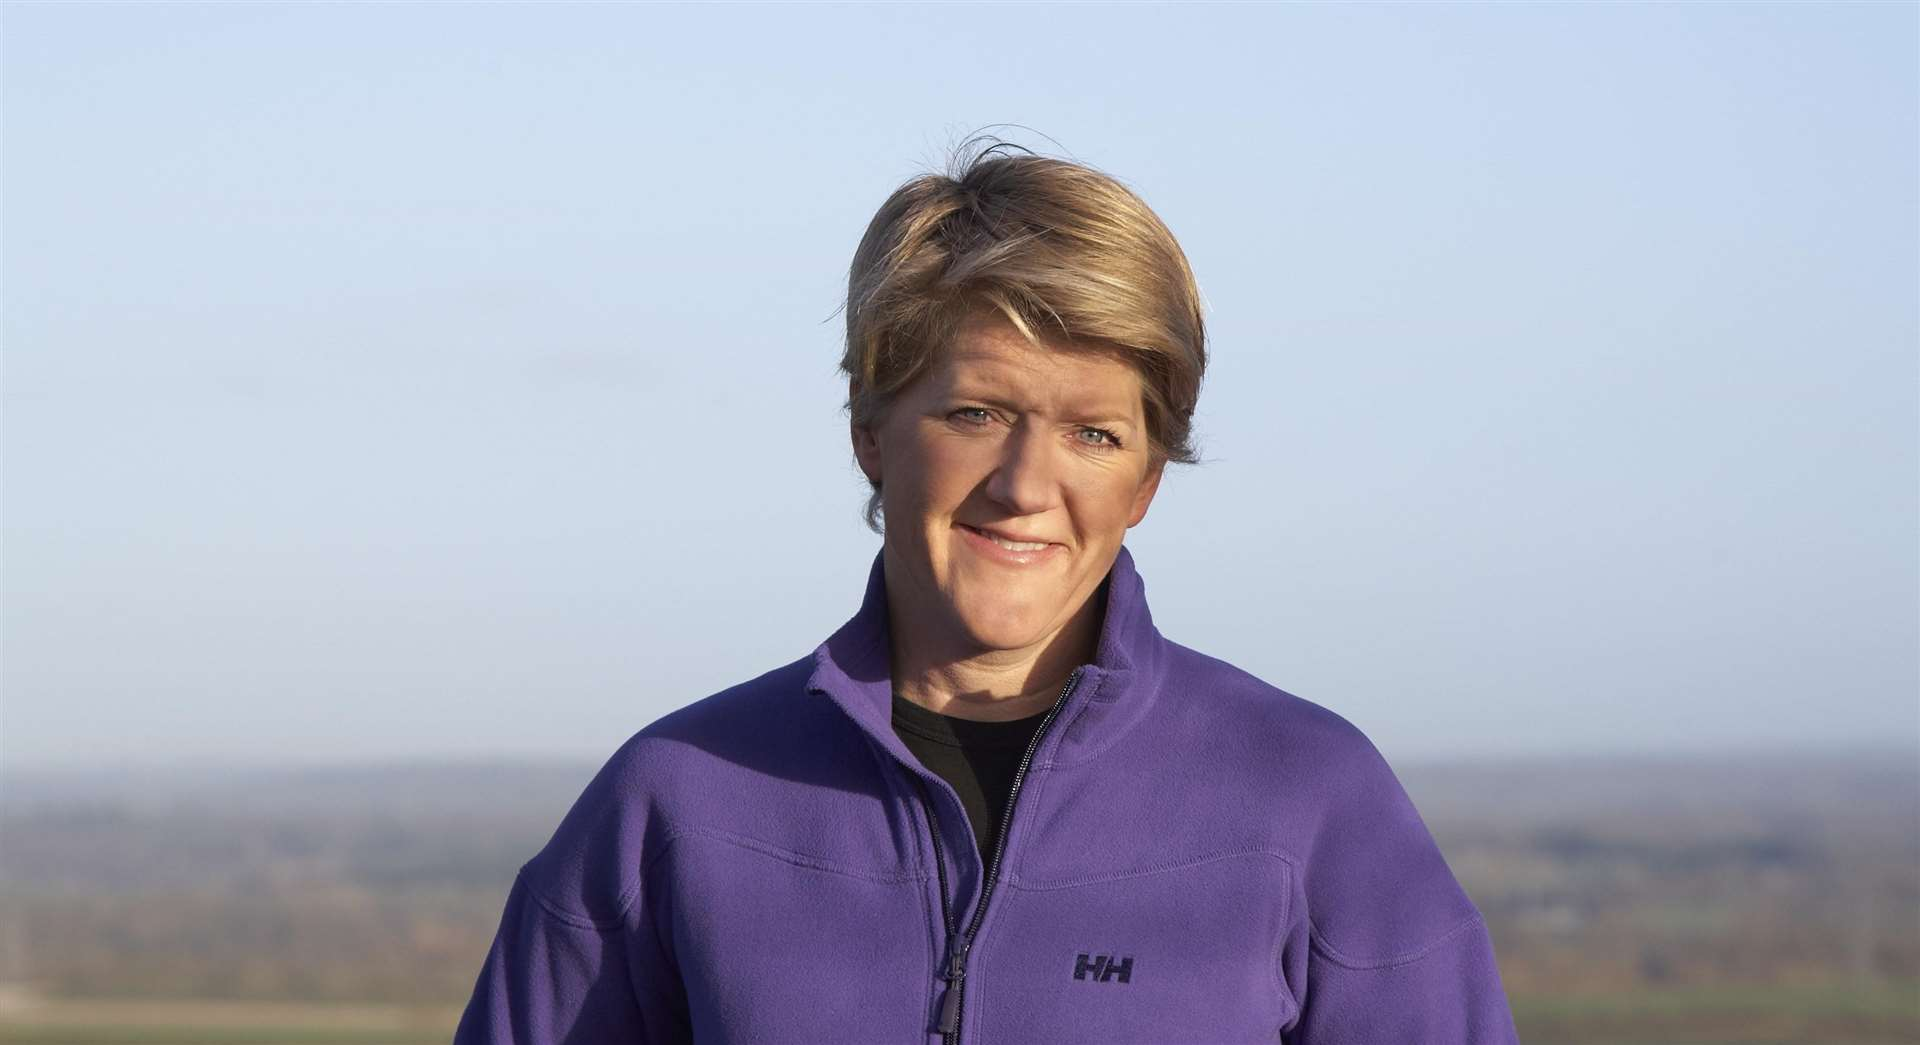 Clare Balding will judge the Leeds Castle 900 writing competition